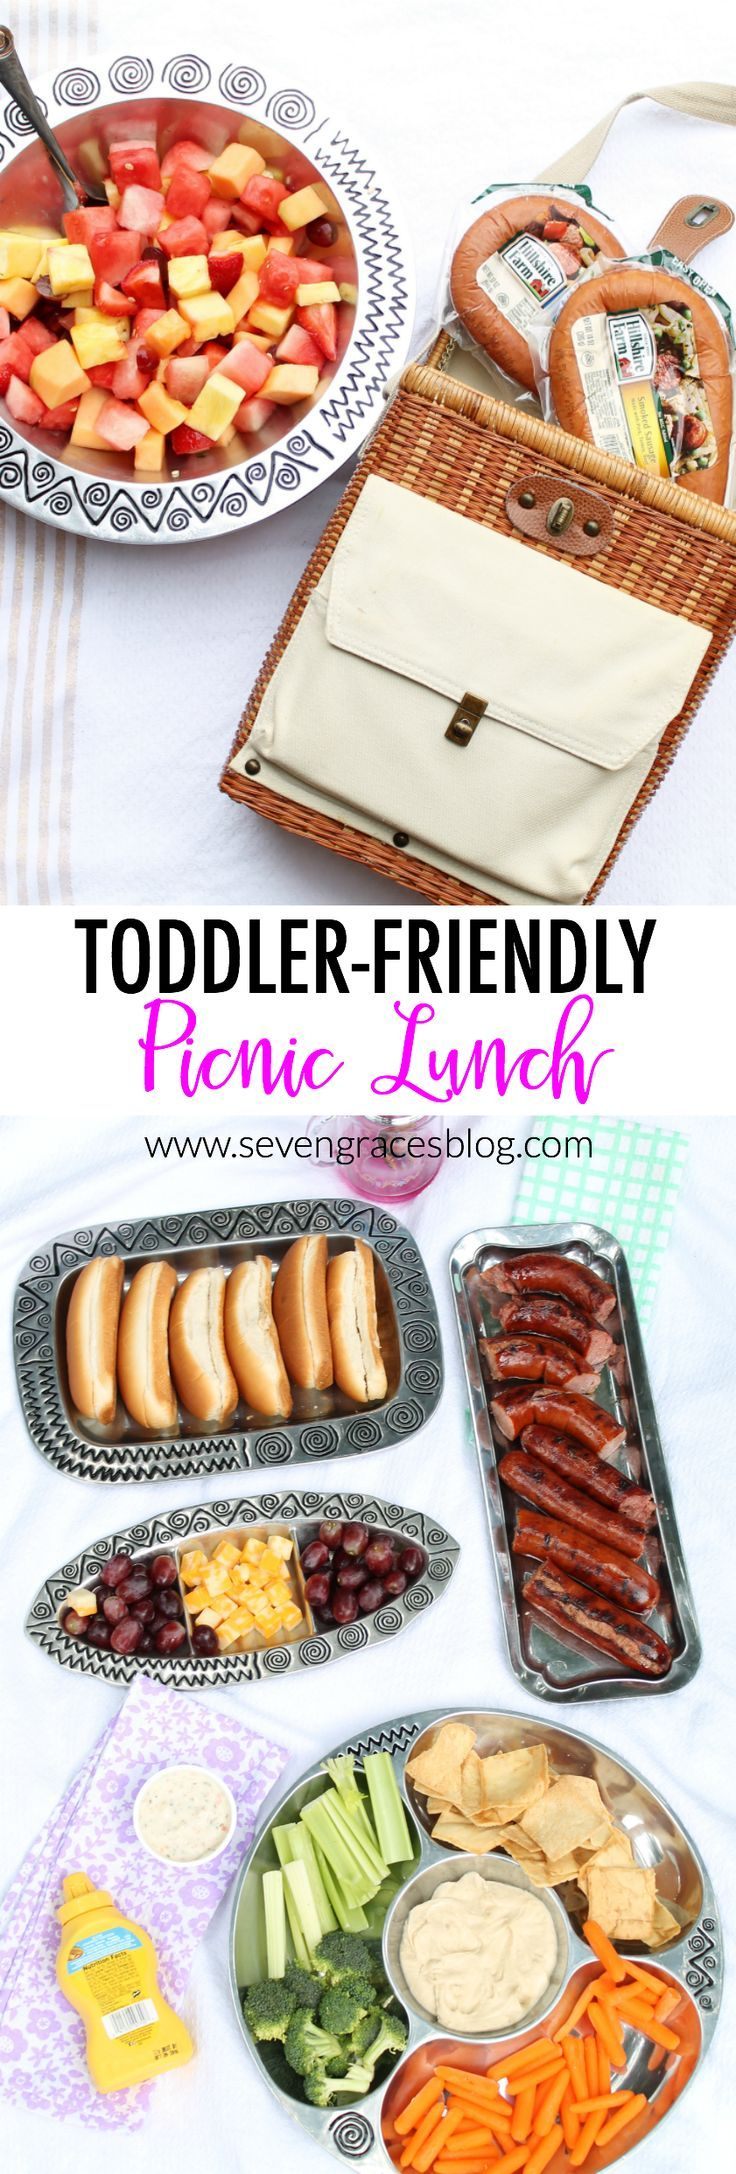 An Easy Toddler Friendly Picnic Lunch